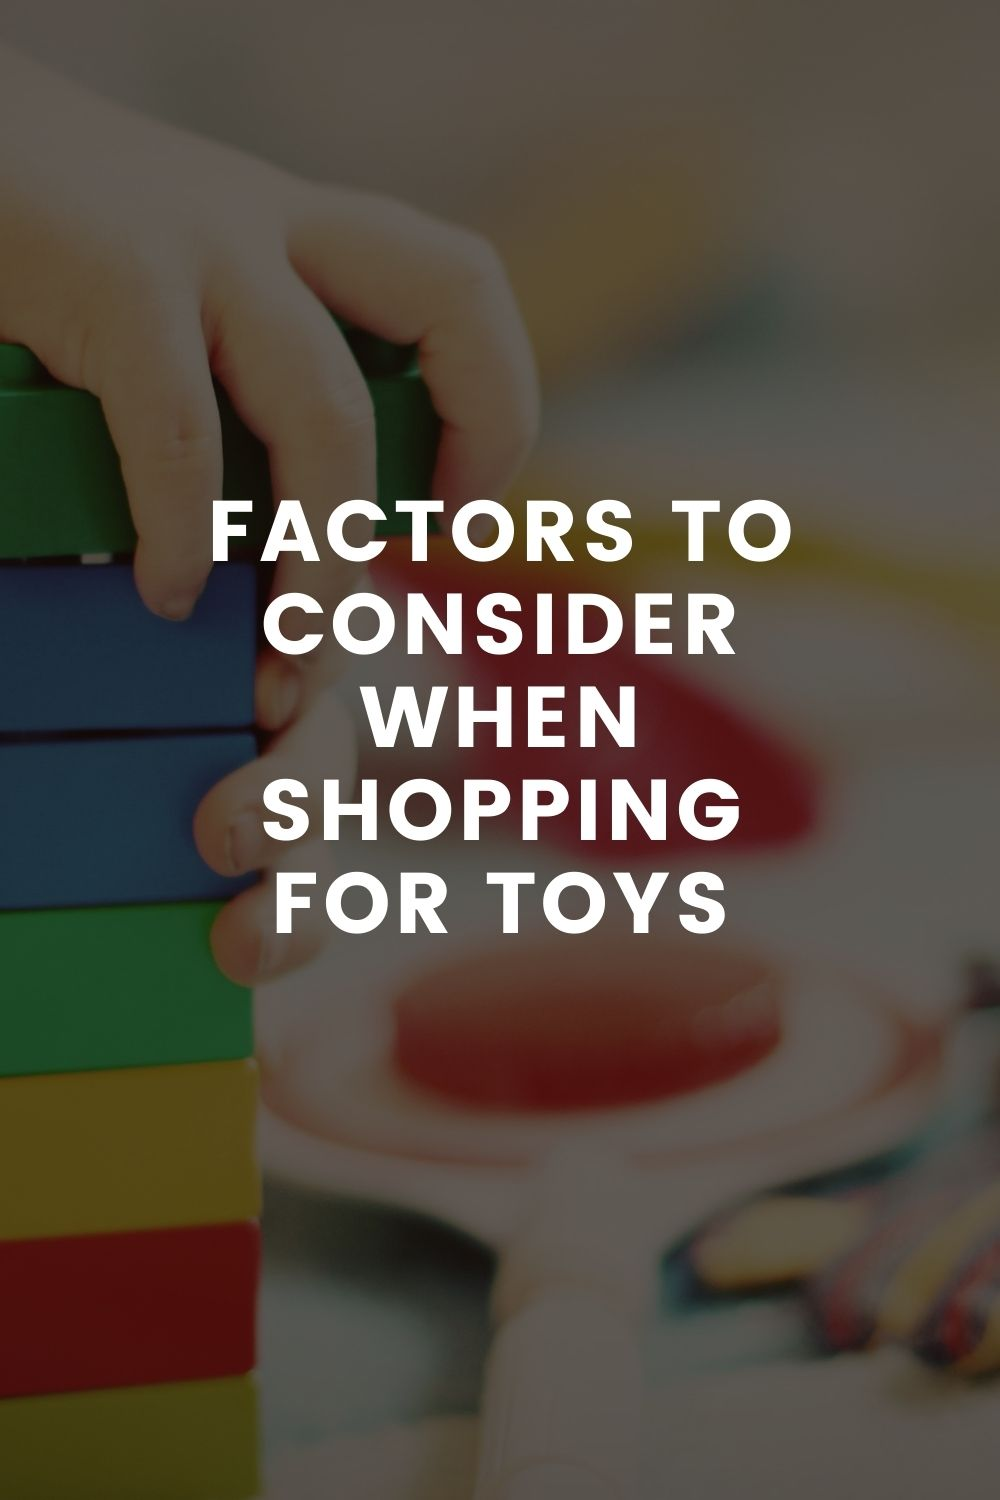 Factors to Consider When Shopping for Toys